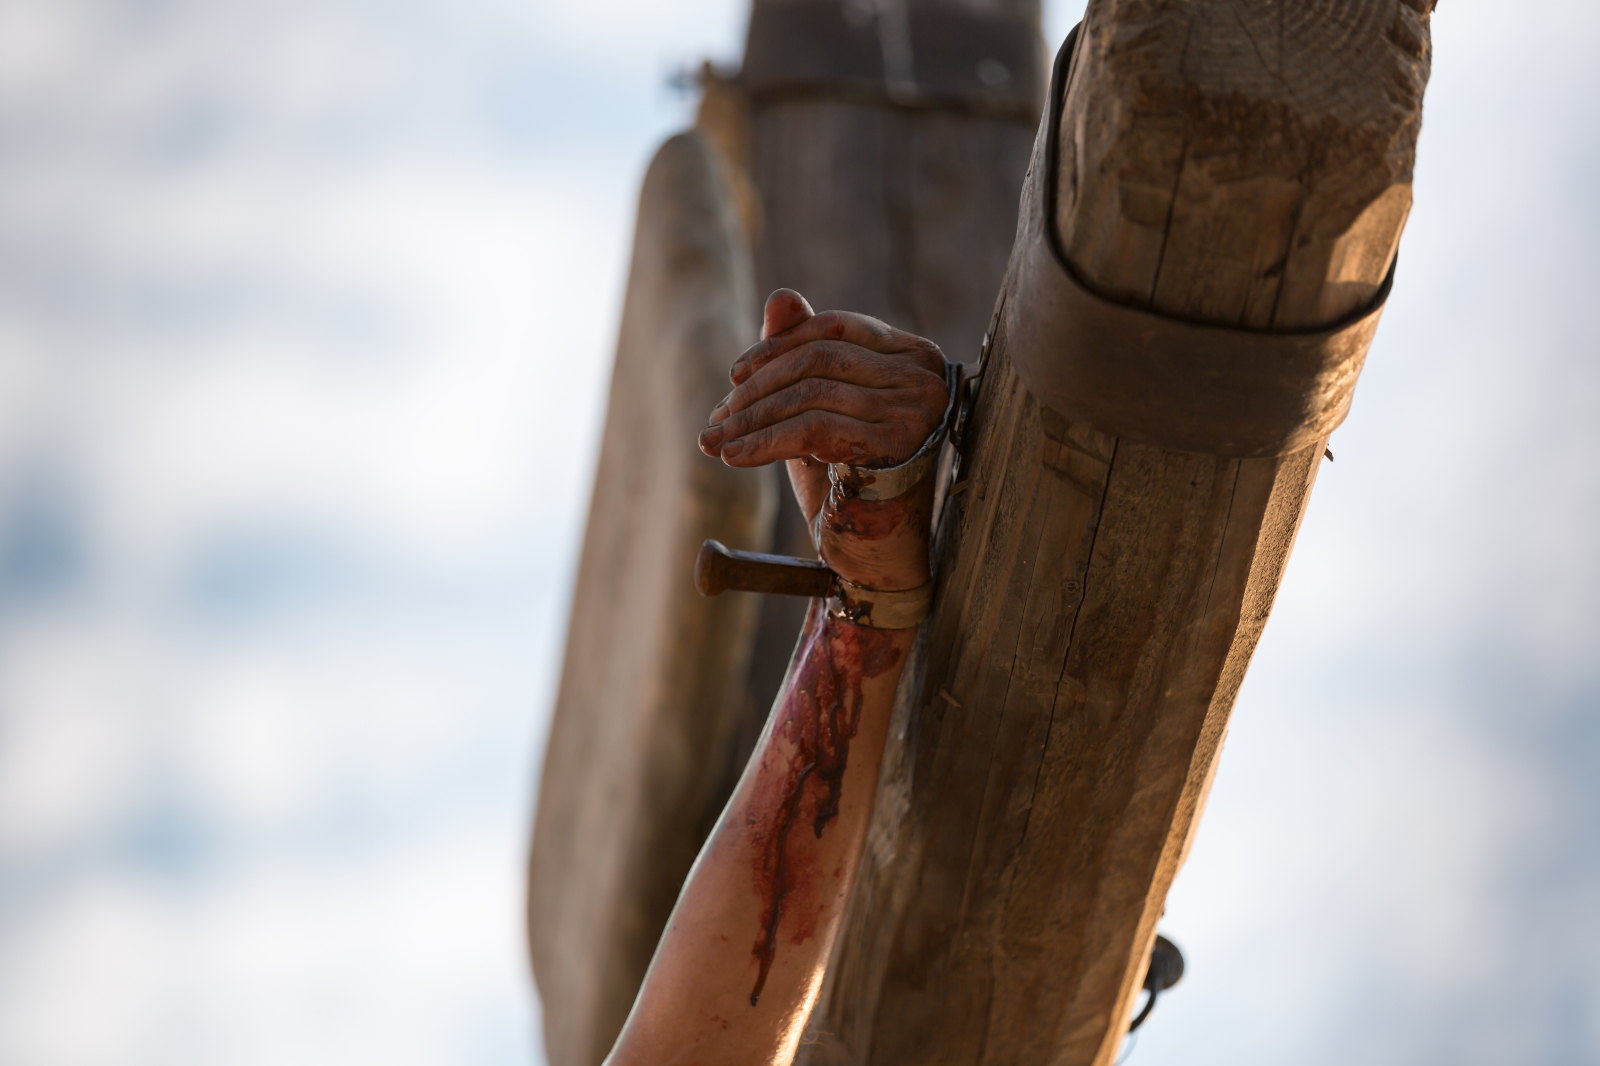 nails in christ u2019s hand and wrist